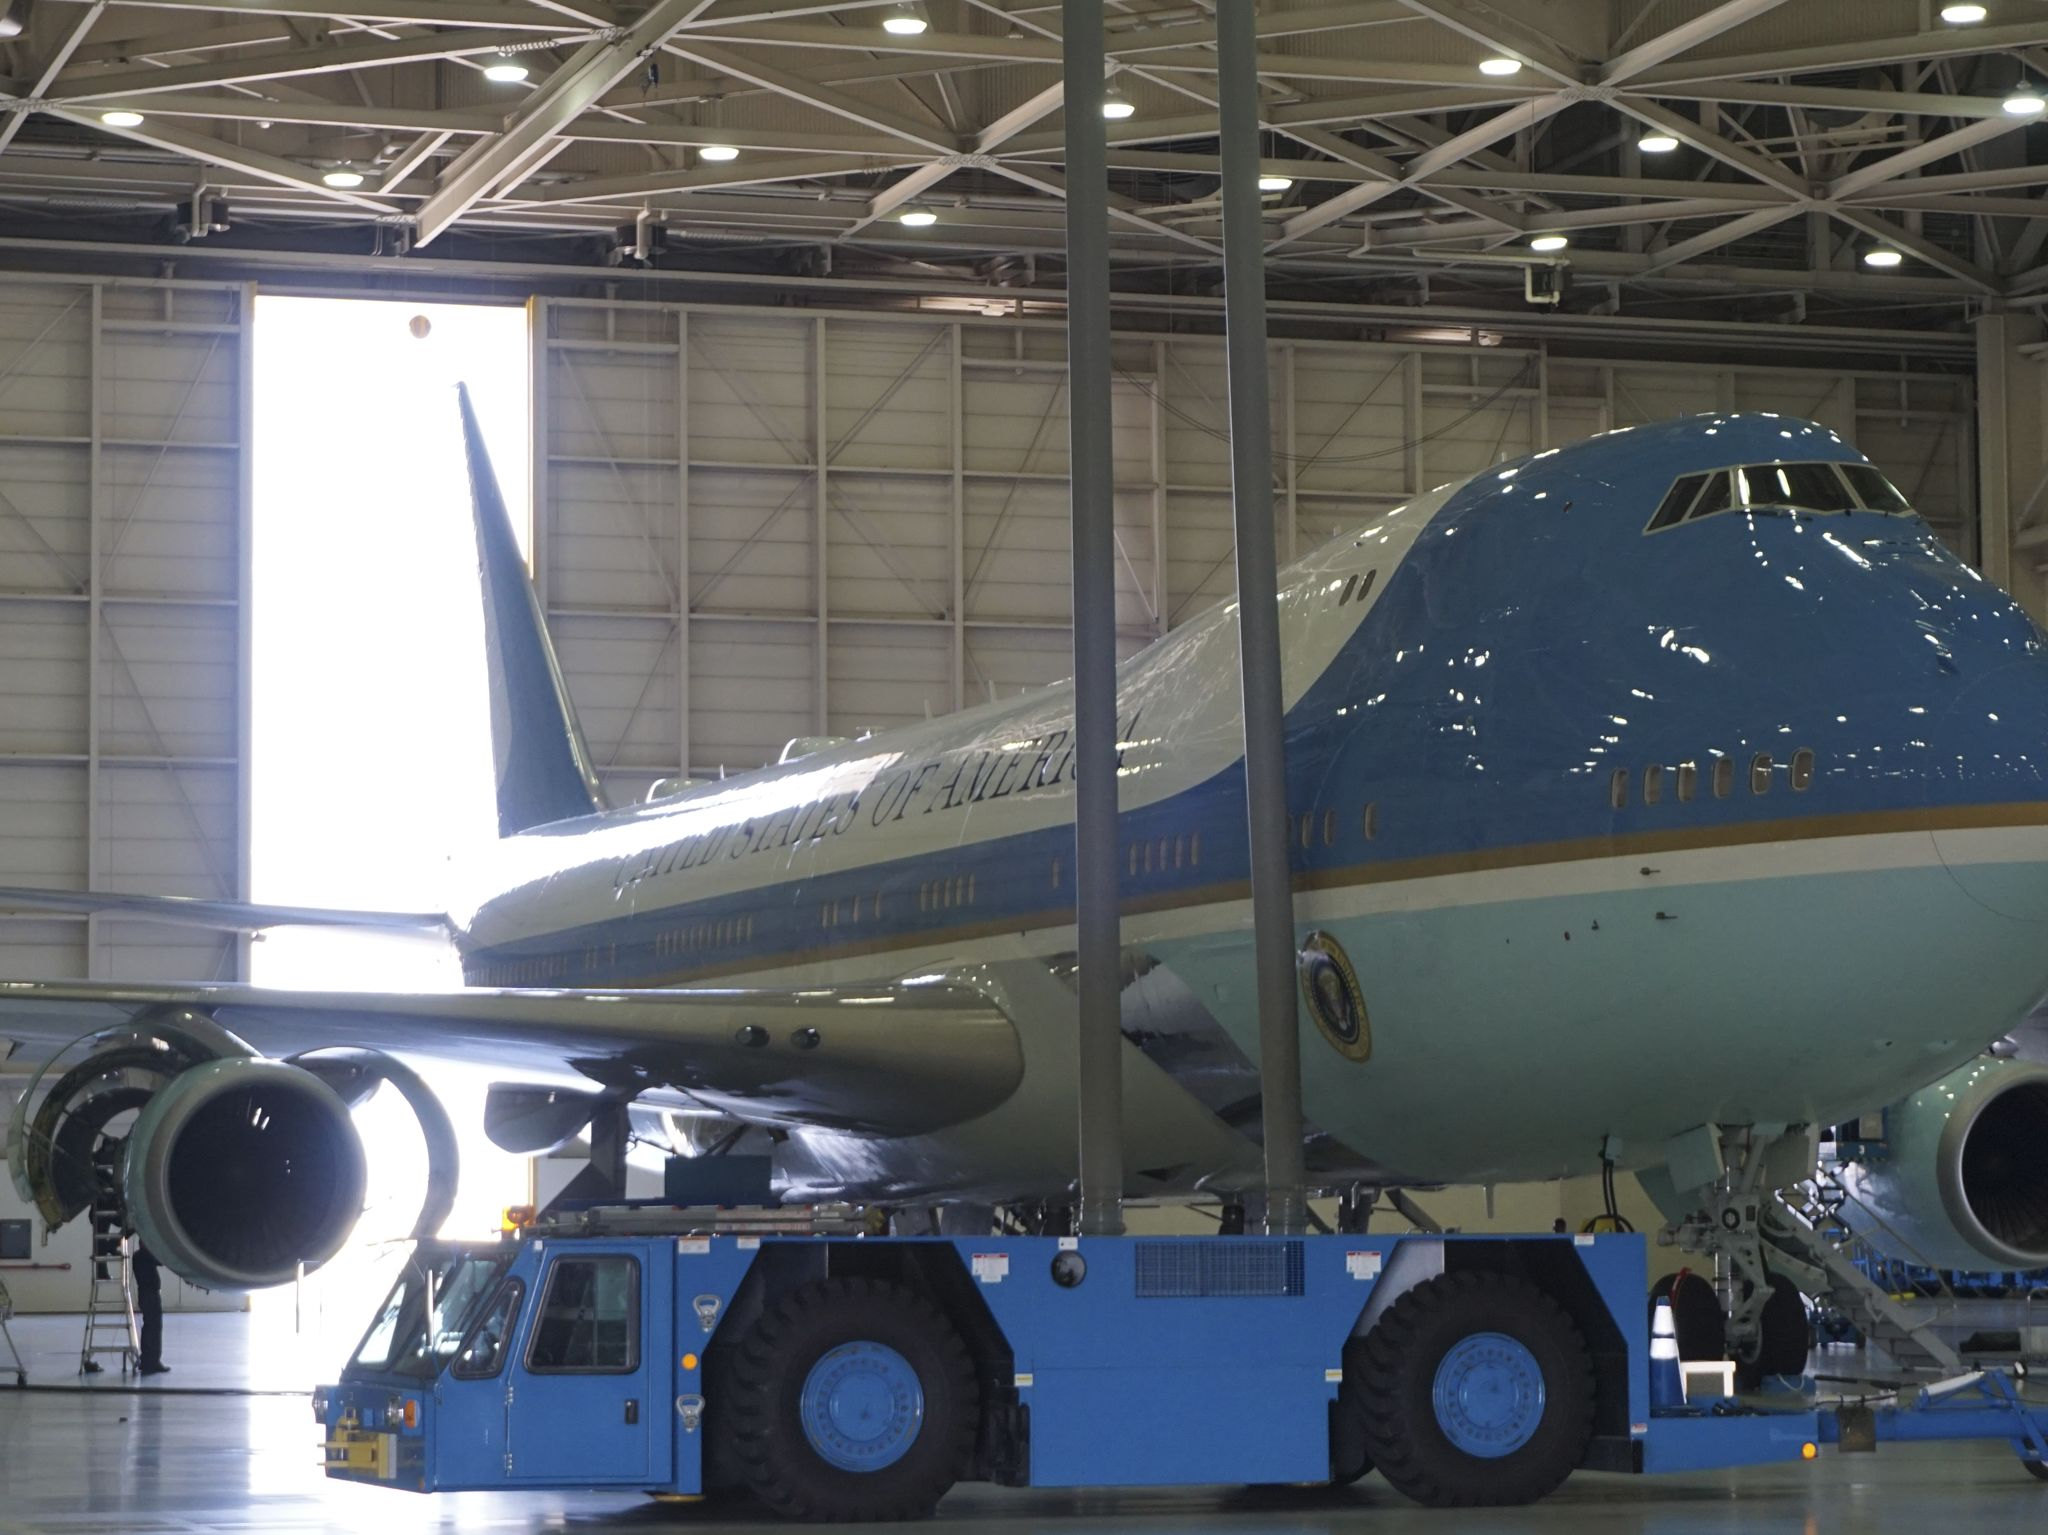 Air Force One in hangar 19. This image is from New Air Force one, The Flying Fortress. [Photo of the day - February 2020]